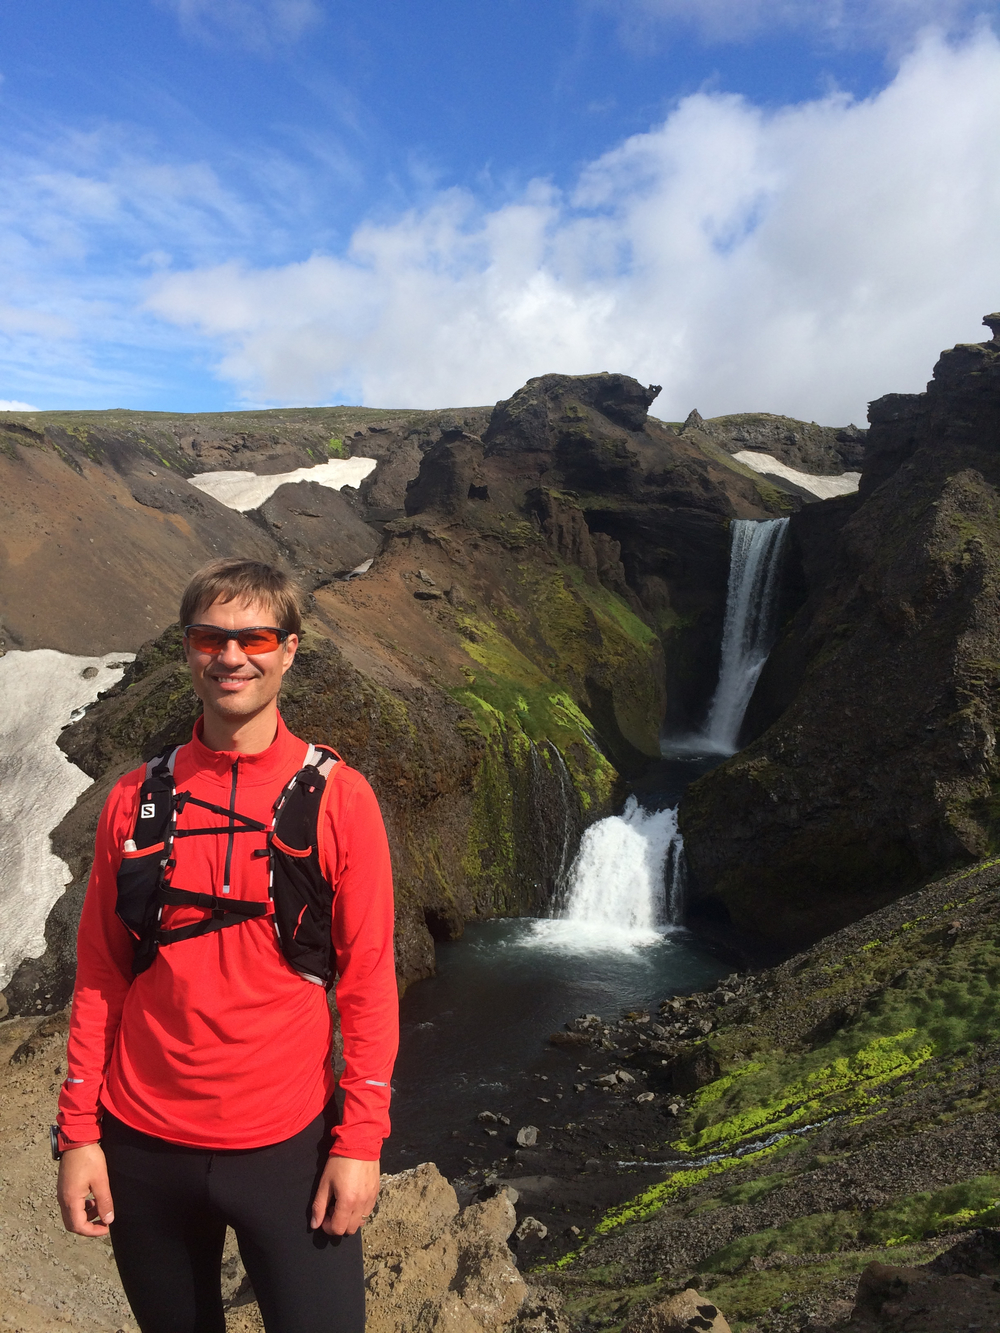 Standing in red, smiling, in front of waterfalls